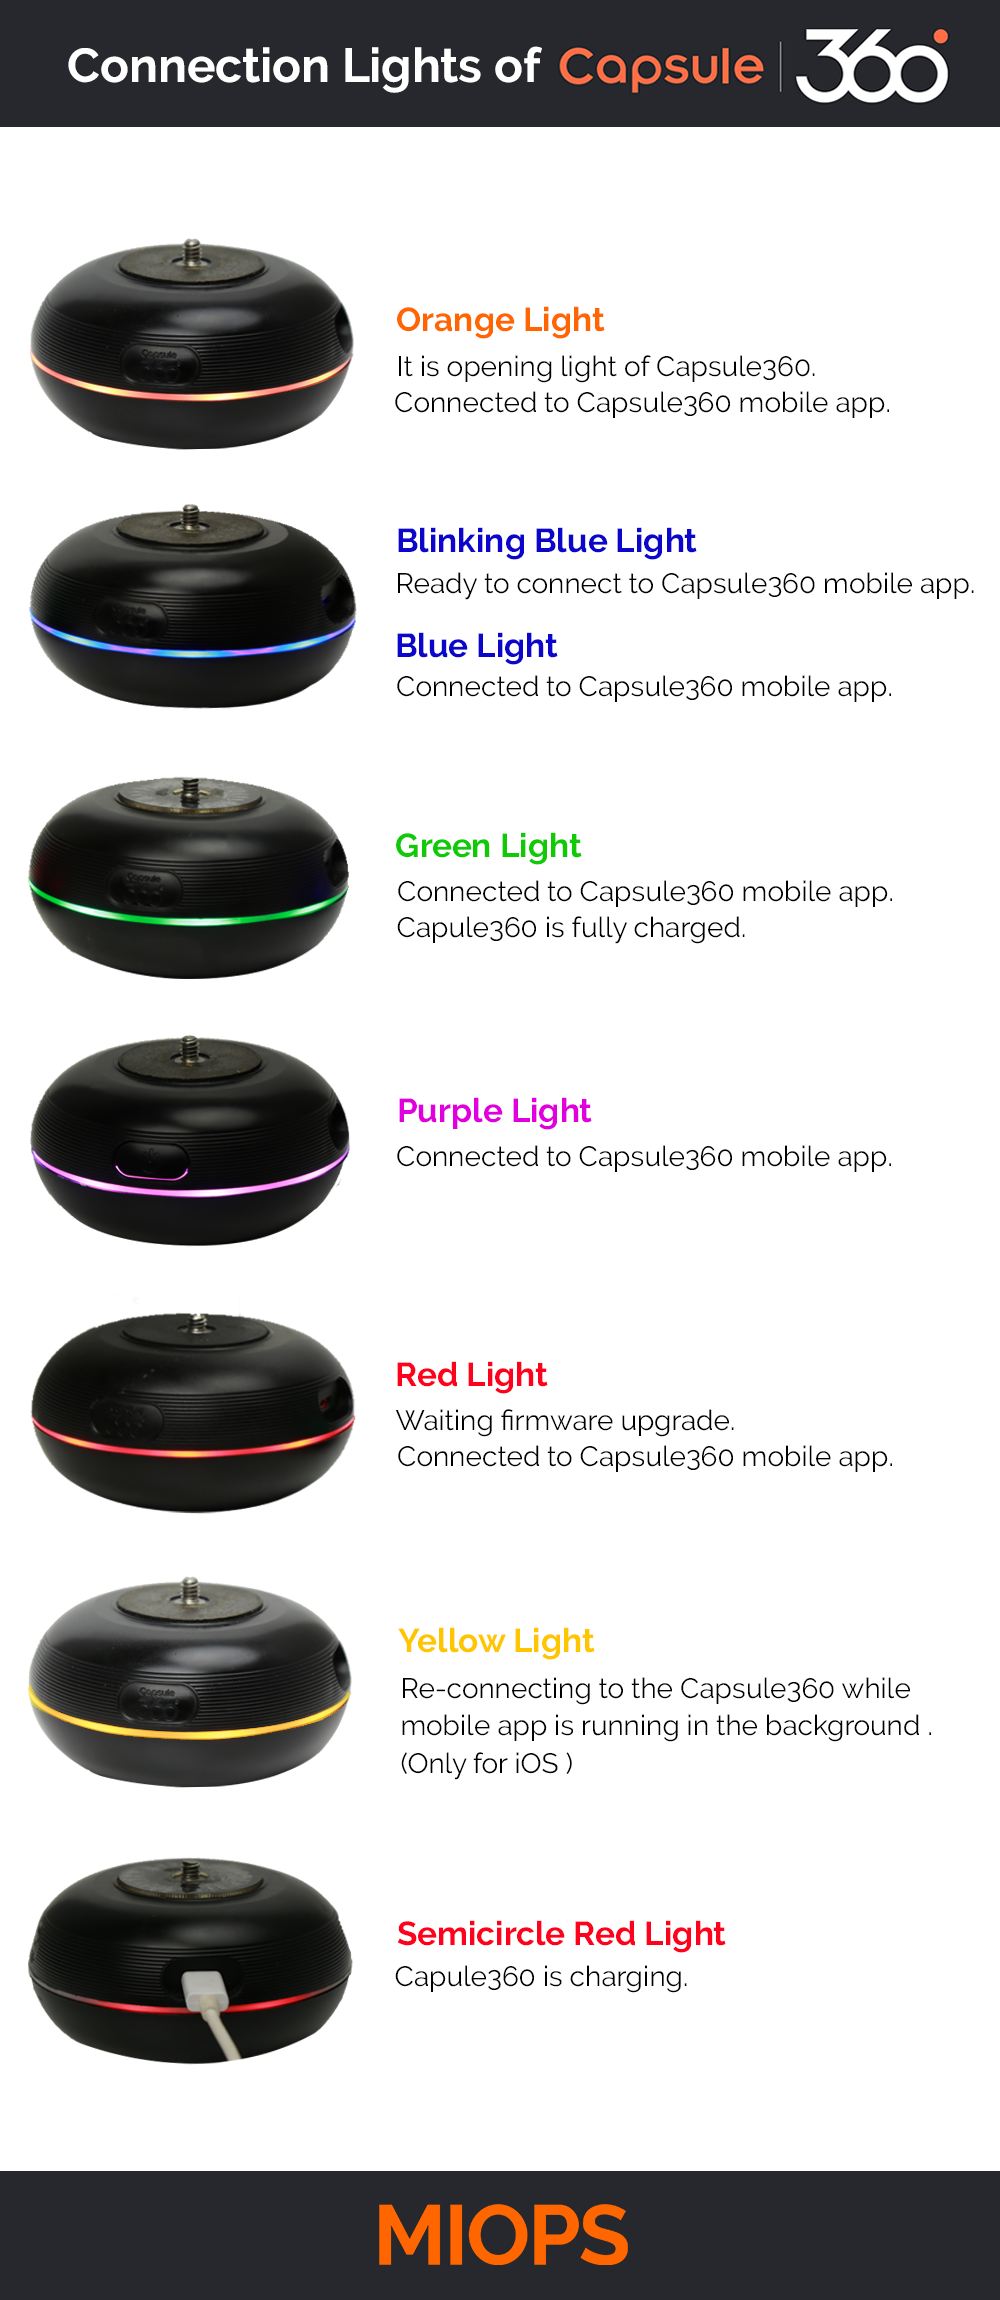 Connection Lights of Capsule360